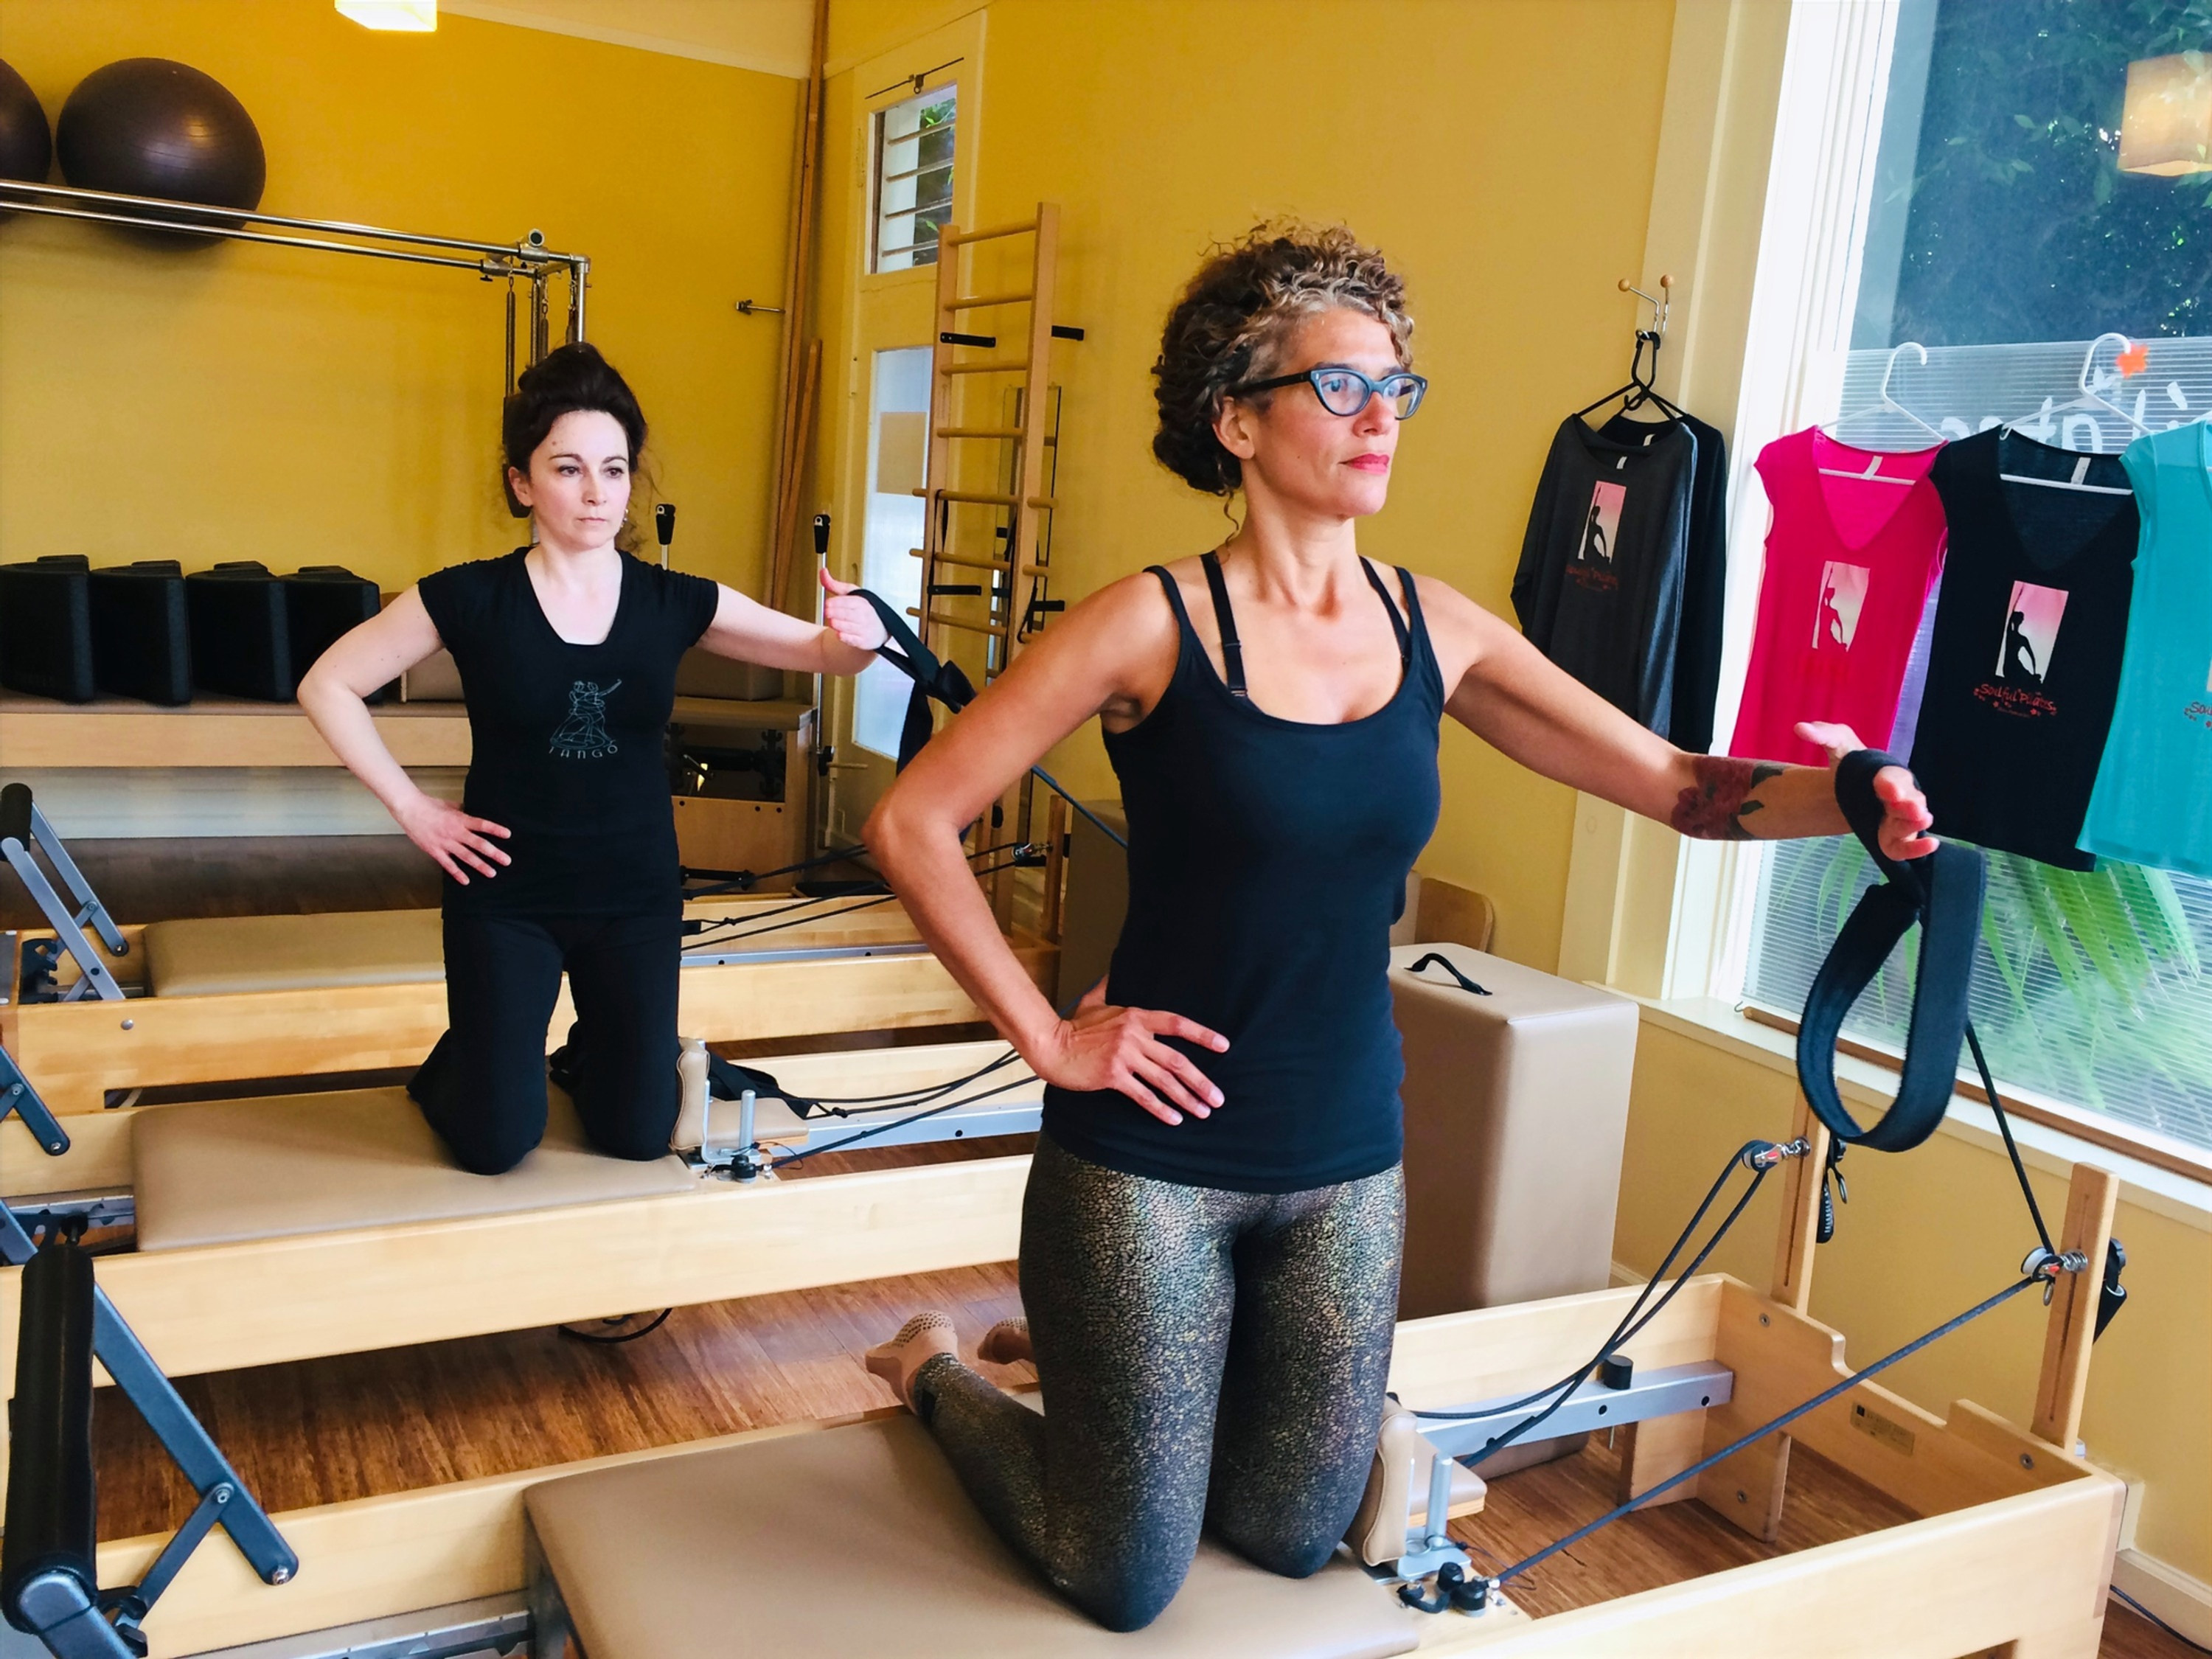 Reformer Duo